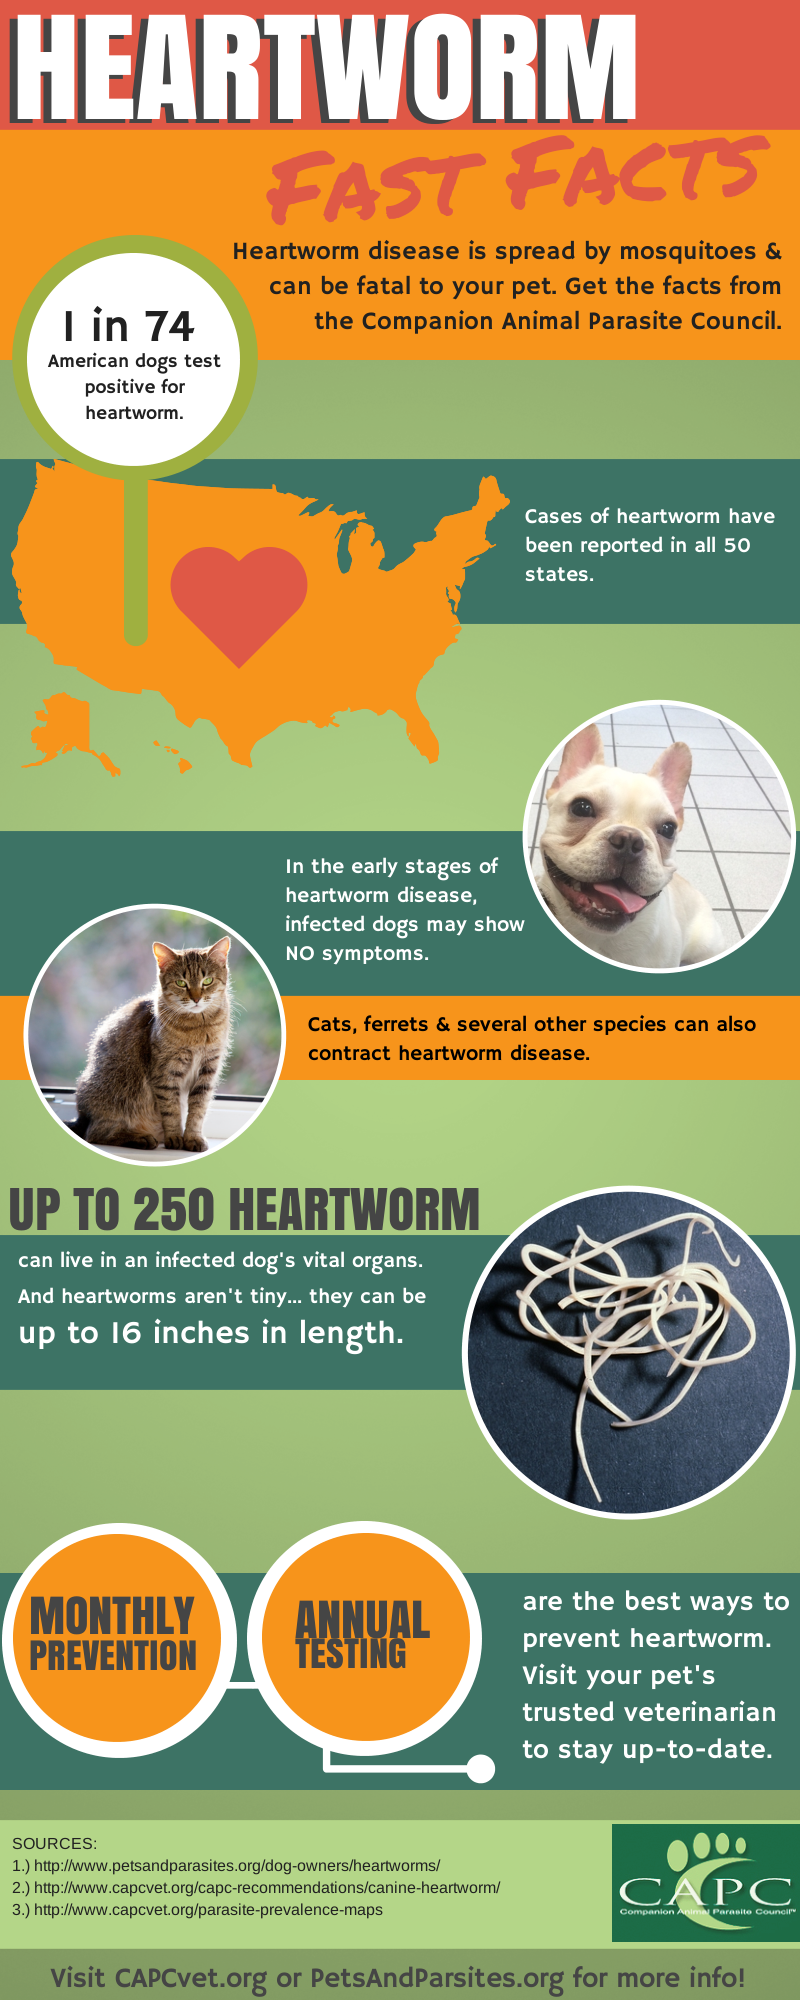 Get The Facts About Heartworm And Pets In This Infographic Talk